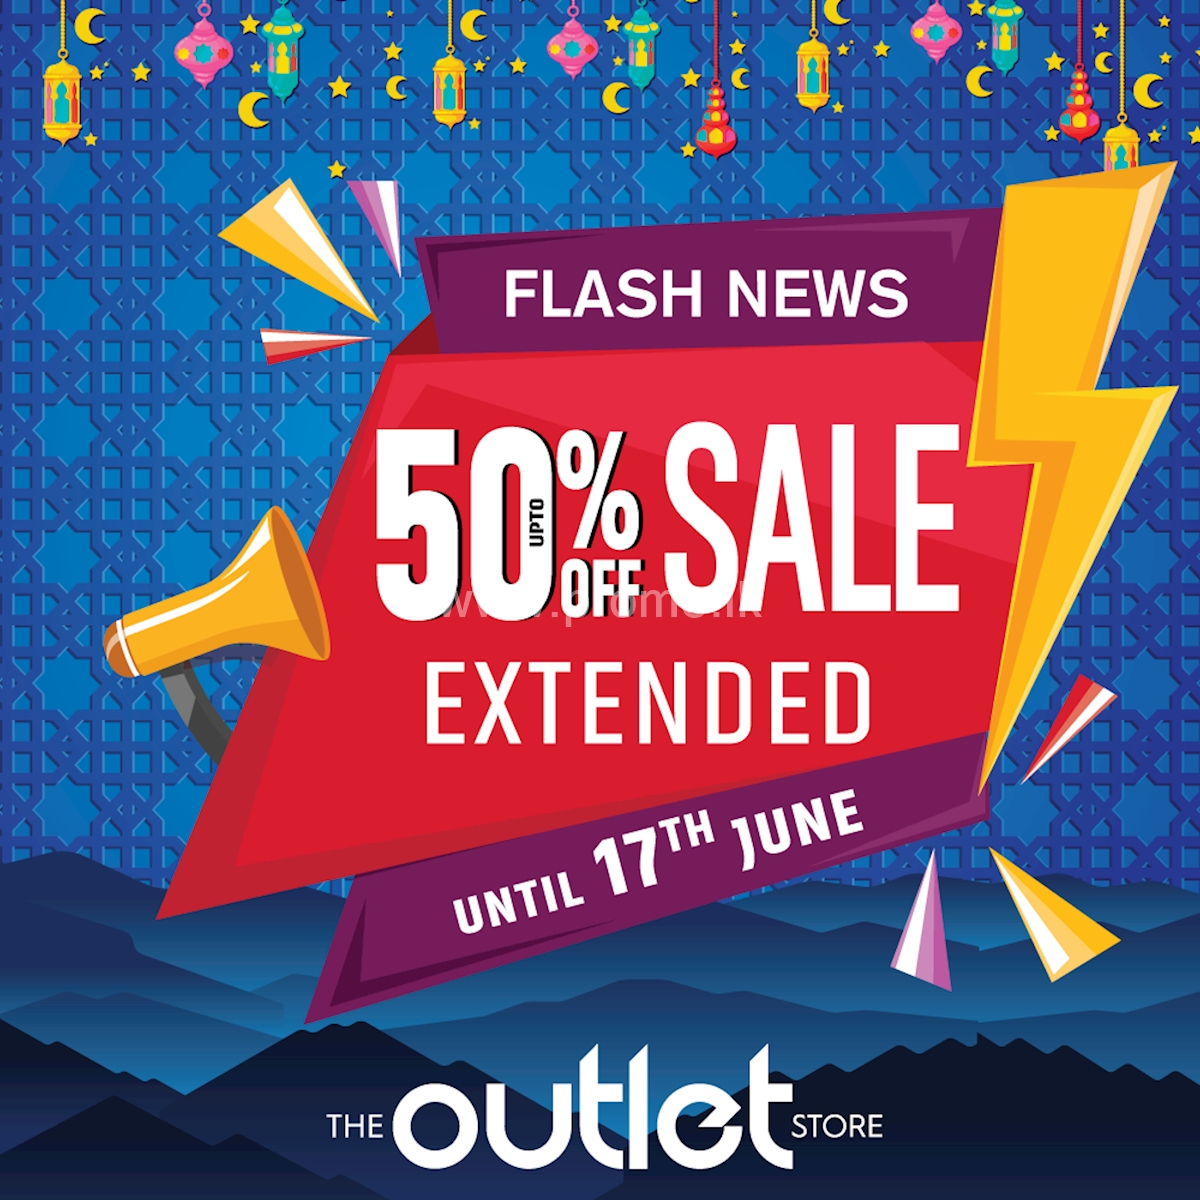 50% Off Extended Sale at The Outlet Store